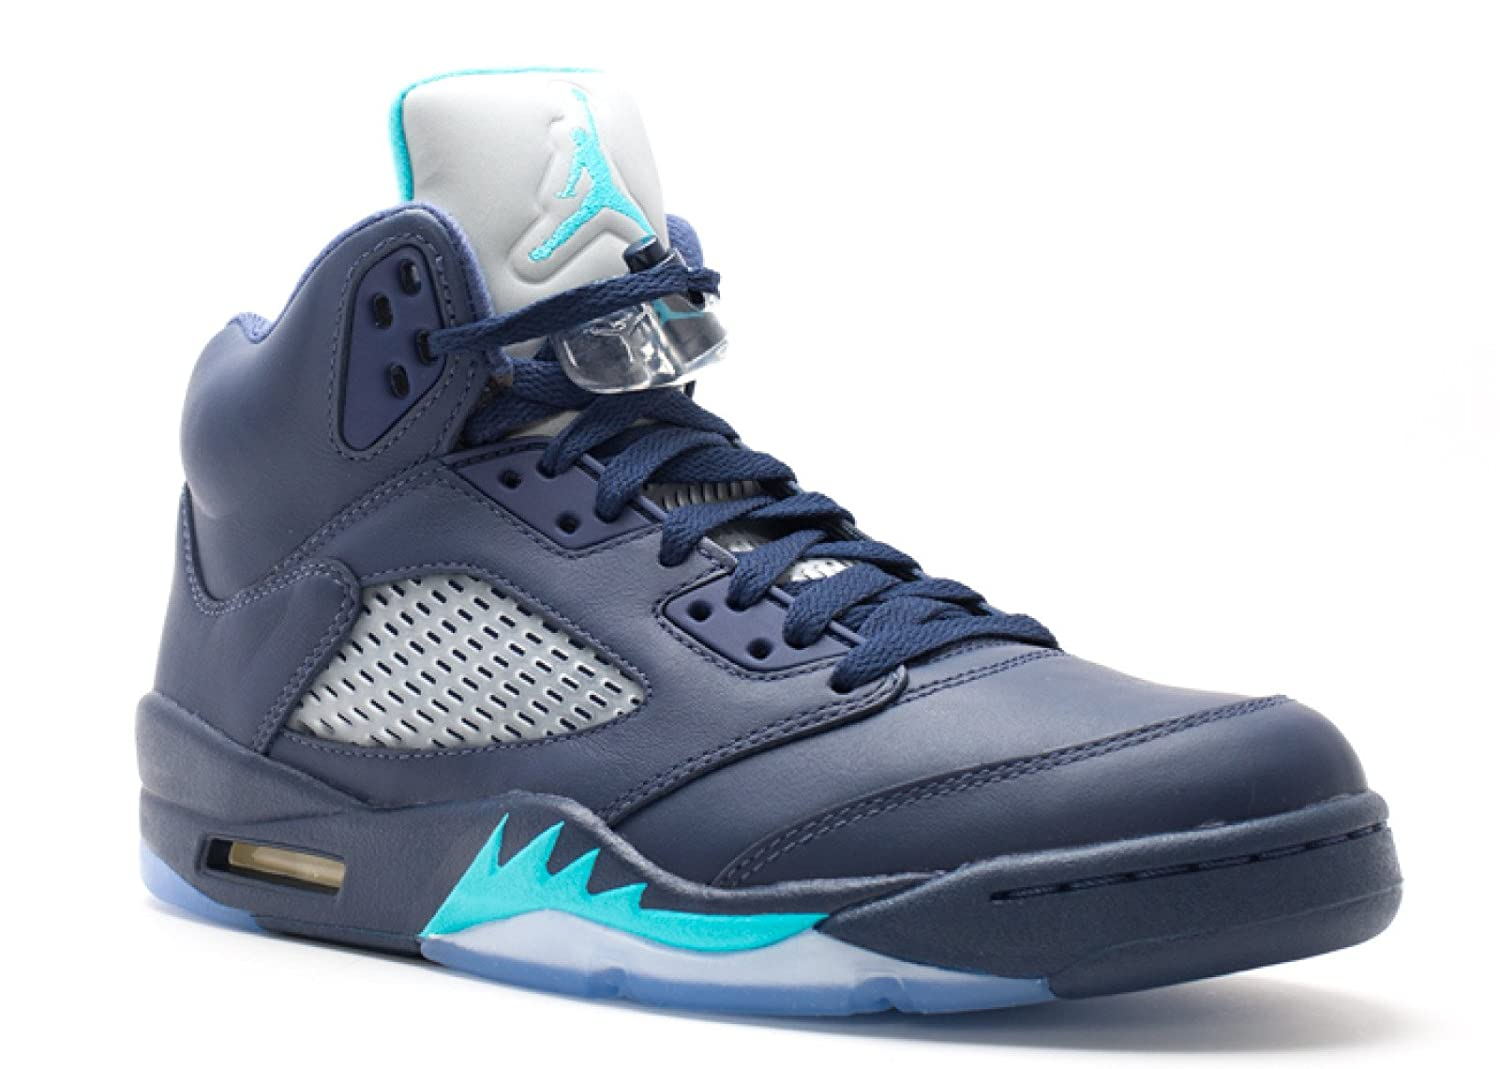 the latest 7d7fe 554f6 Jordan 5 Retro Men's Shoes Midnight Navy/Turquoise Blue-White 136027-405  (13 D(M) US)